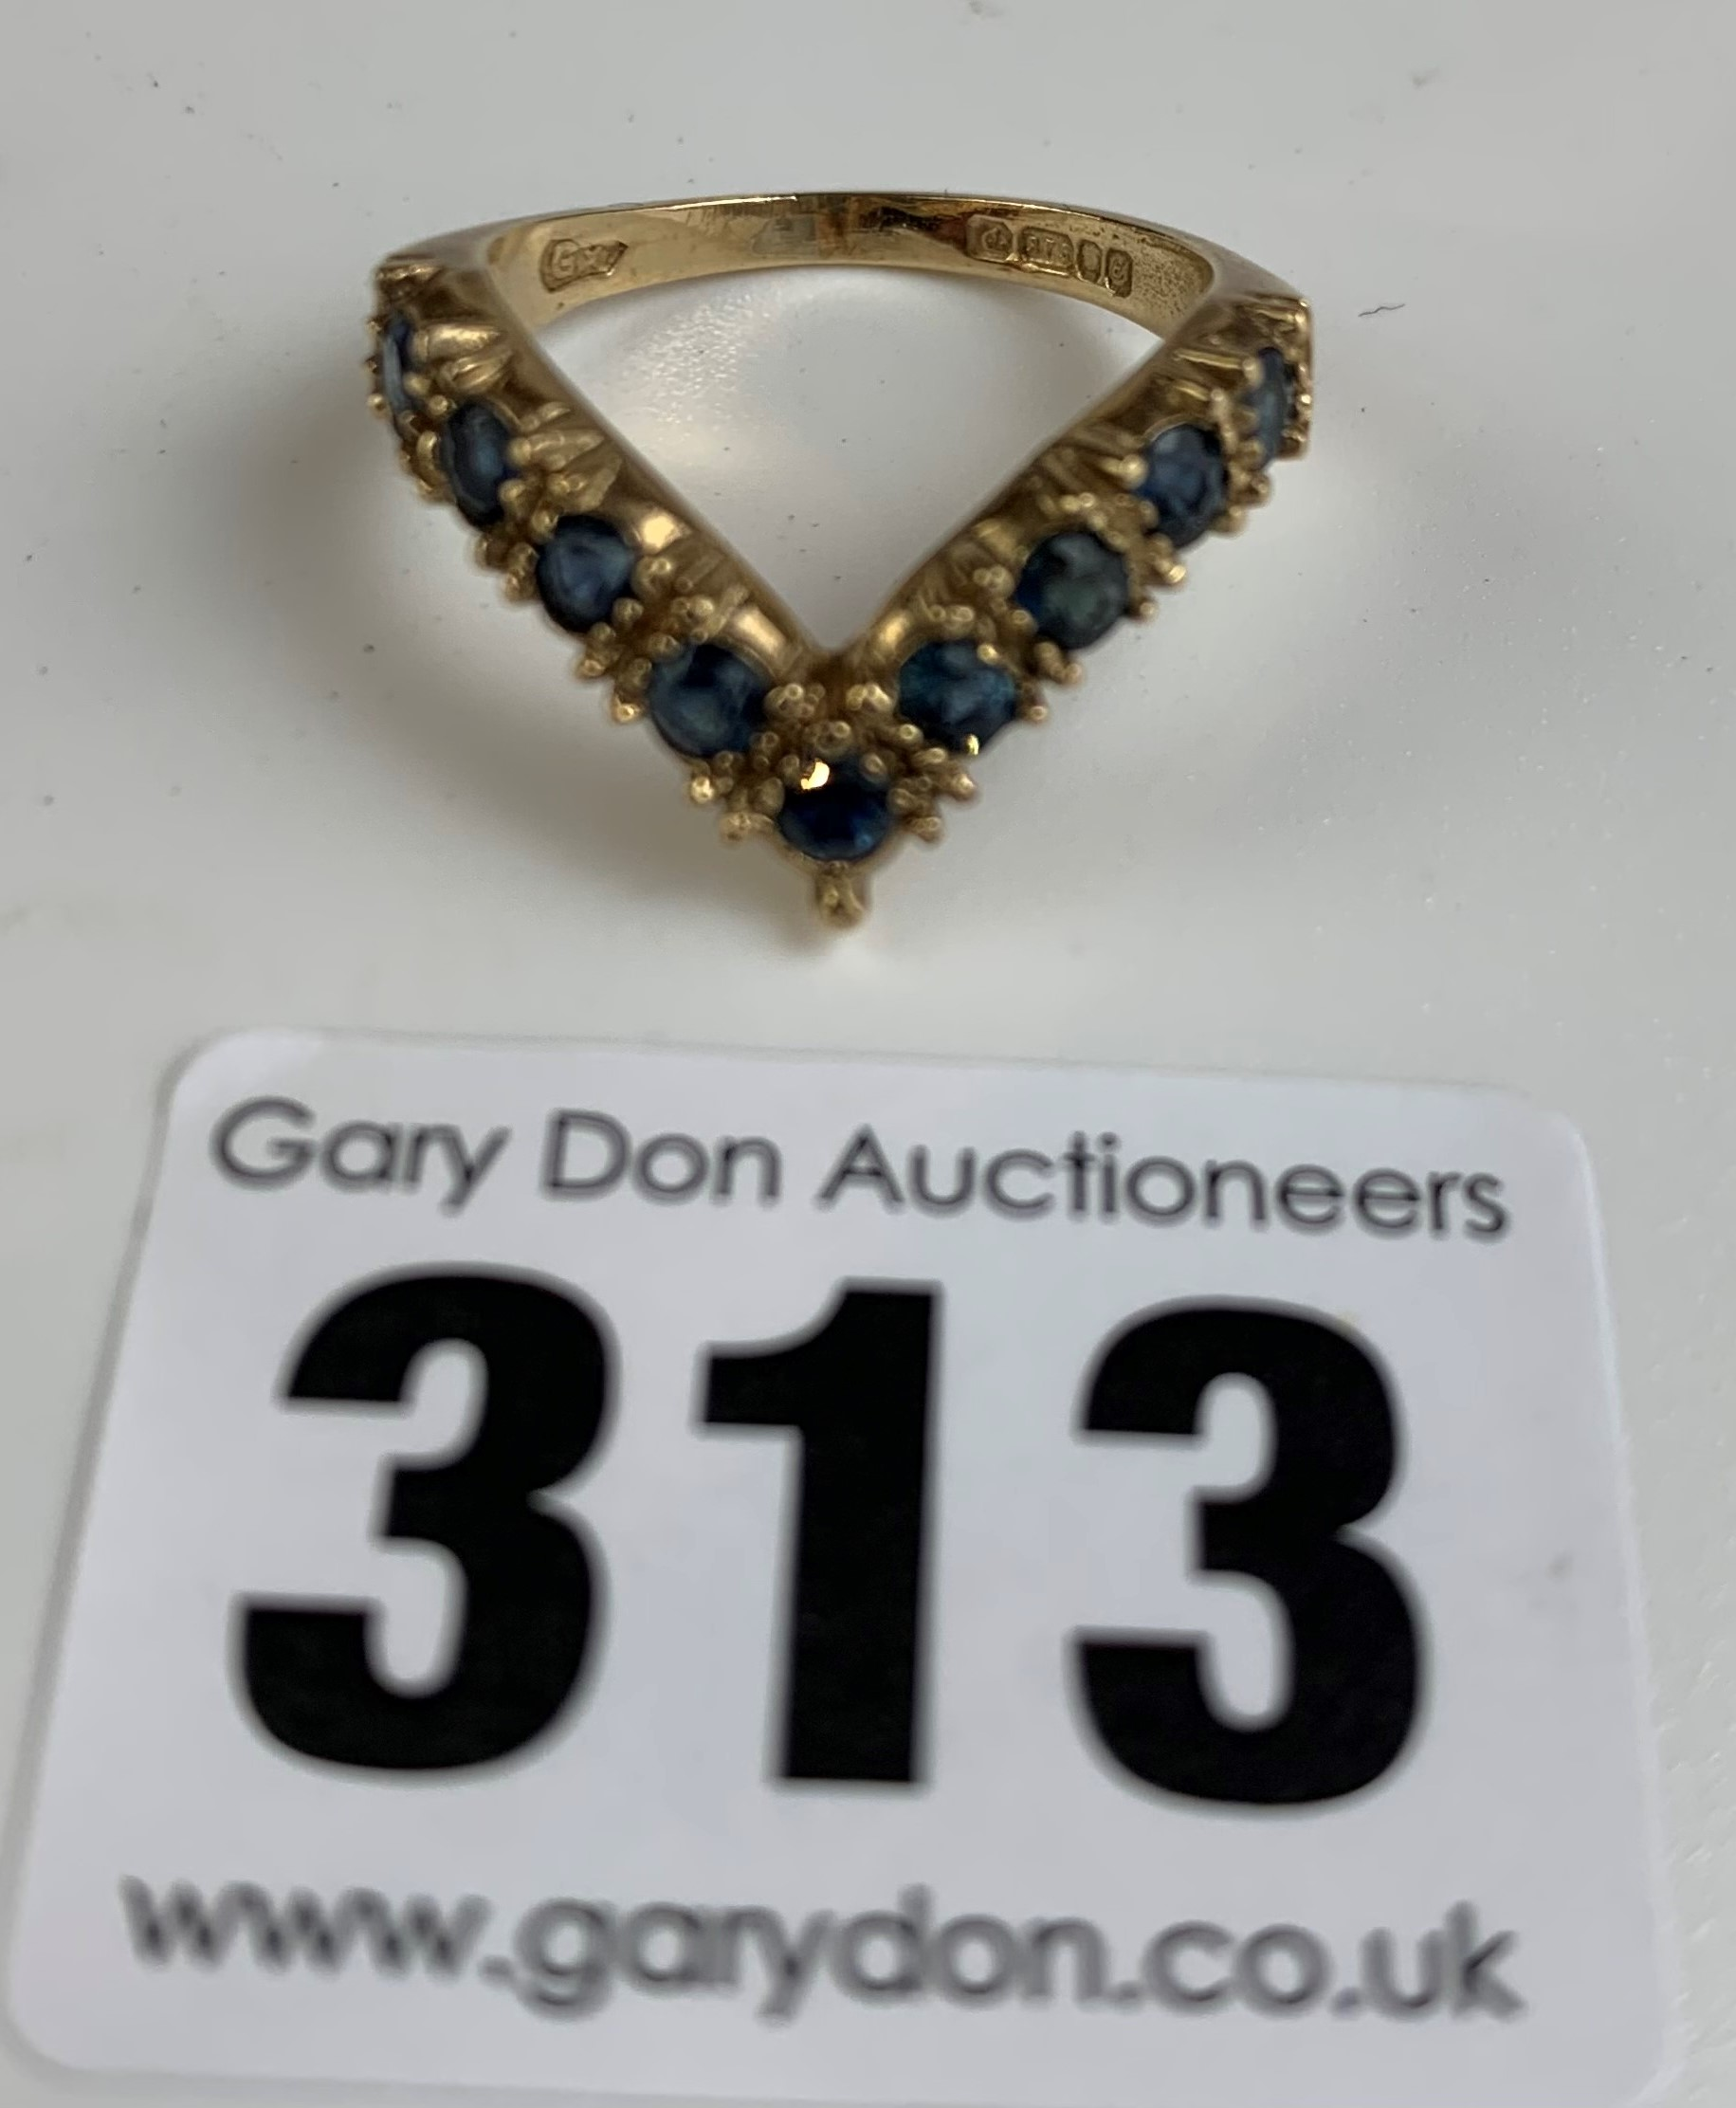 9k gold and blue stone wishbone ring, size N/O, w: 3.5 gms - Image 3 of 7